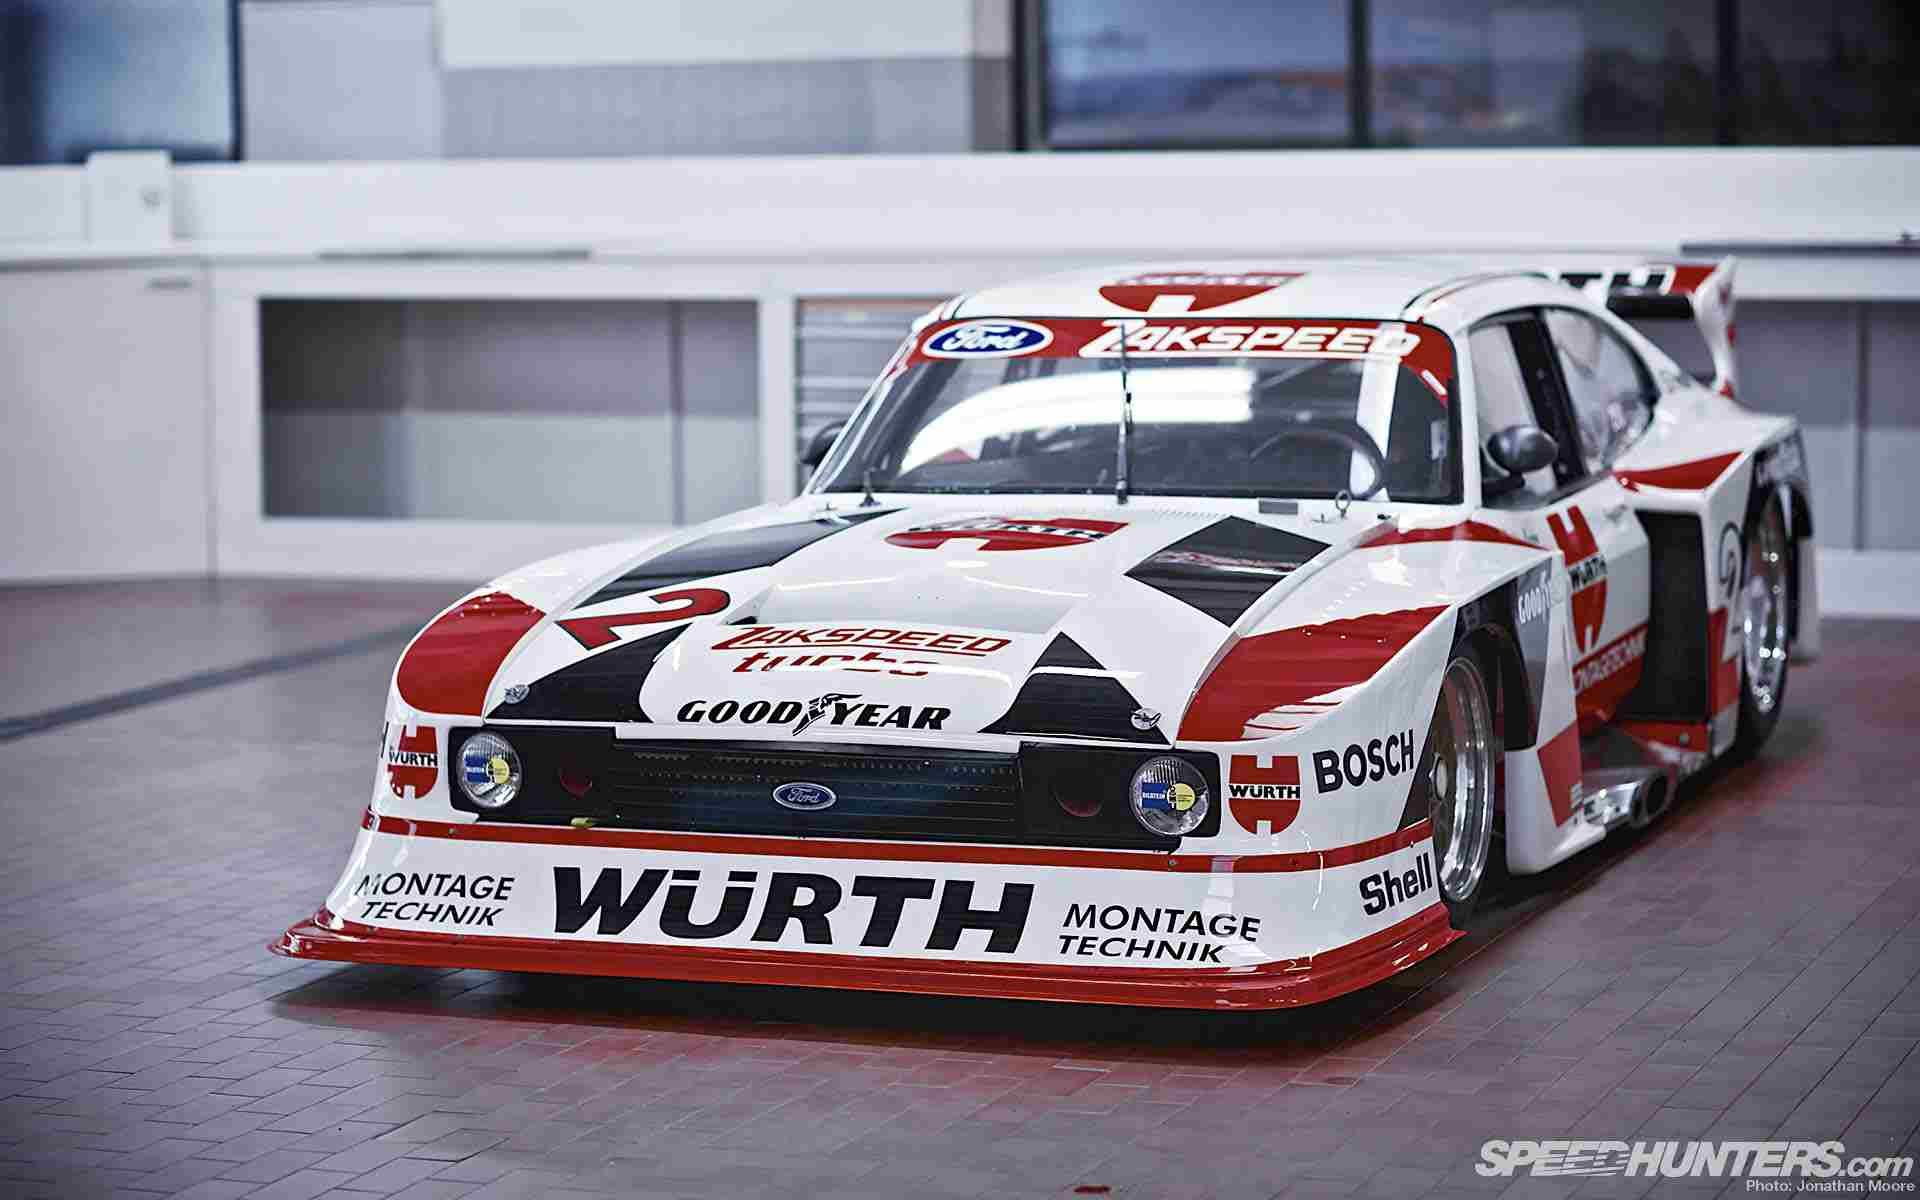 Ford Capri Ford Capri Ford Motorsport Ford Racing